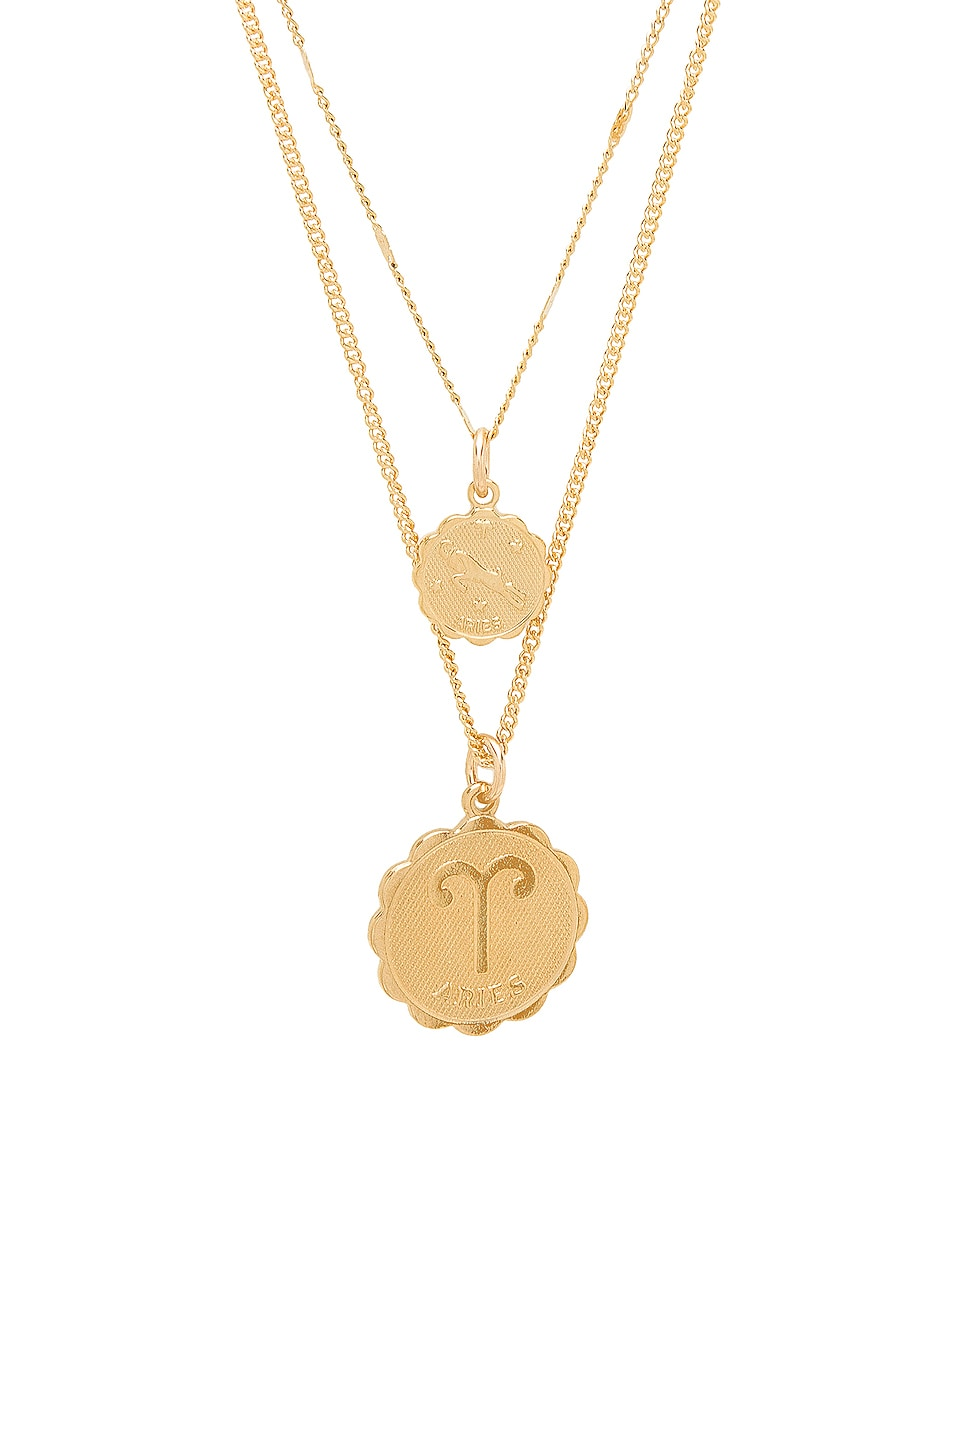 market products zodiac flea necklace girl